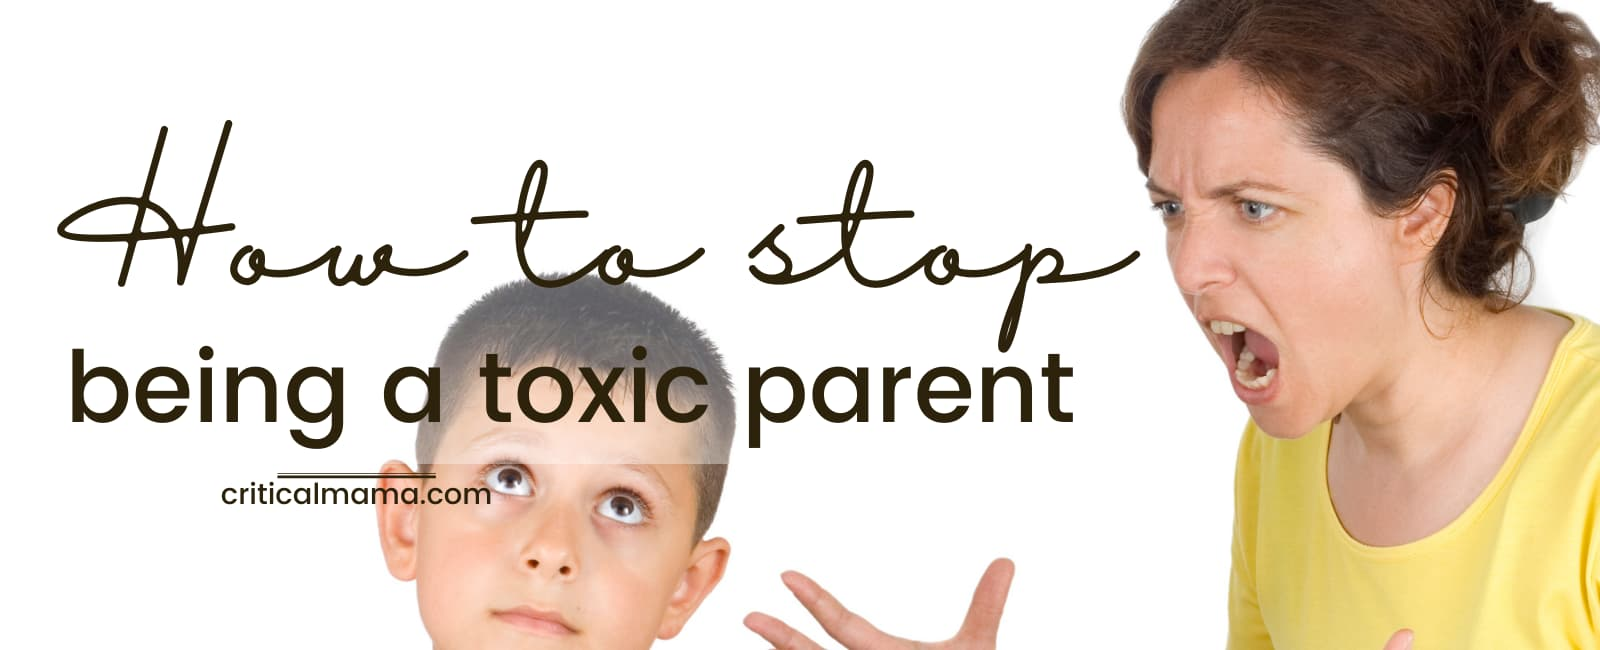 Toxic Mom Yelling At Son, Text - How To Stop Being A Toxic Parent